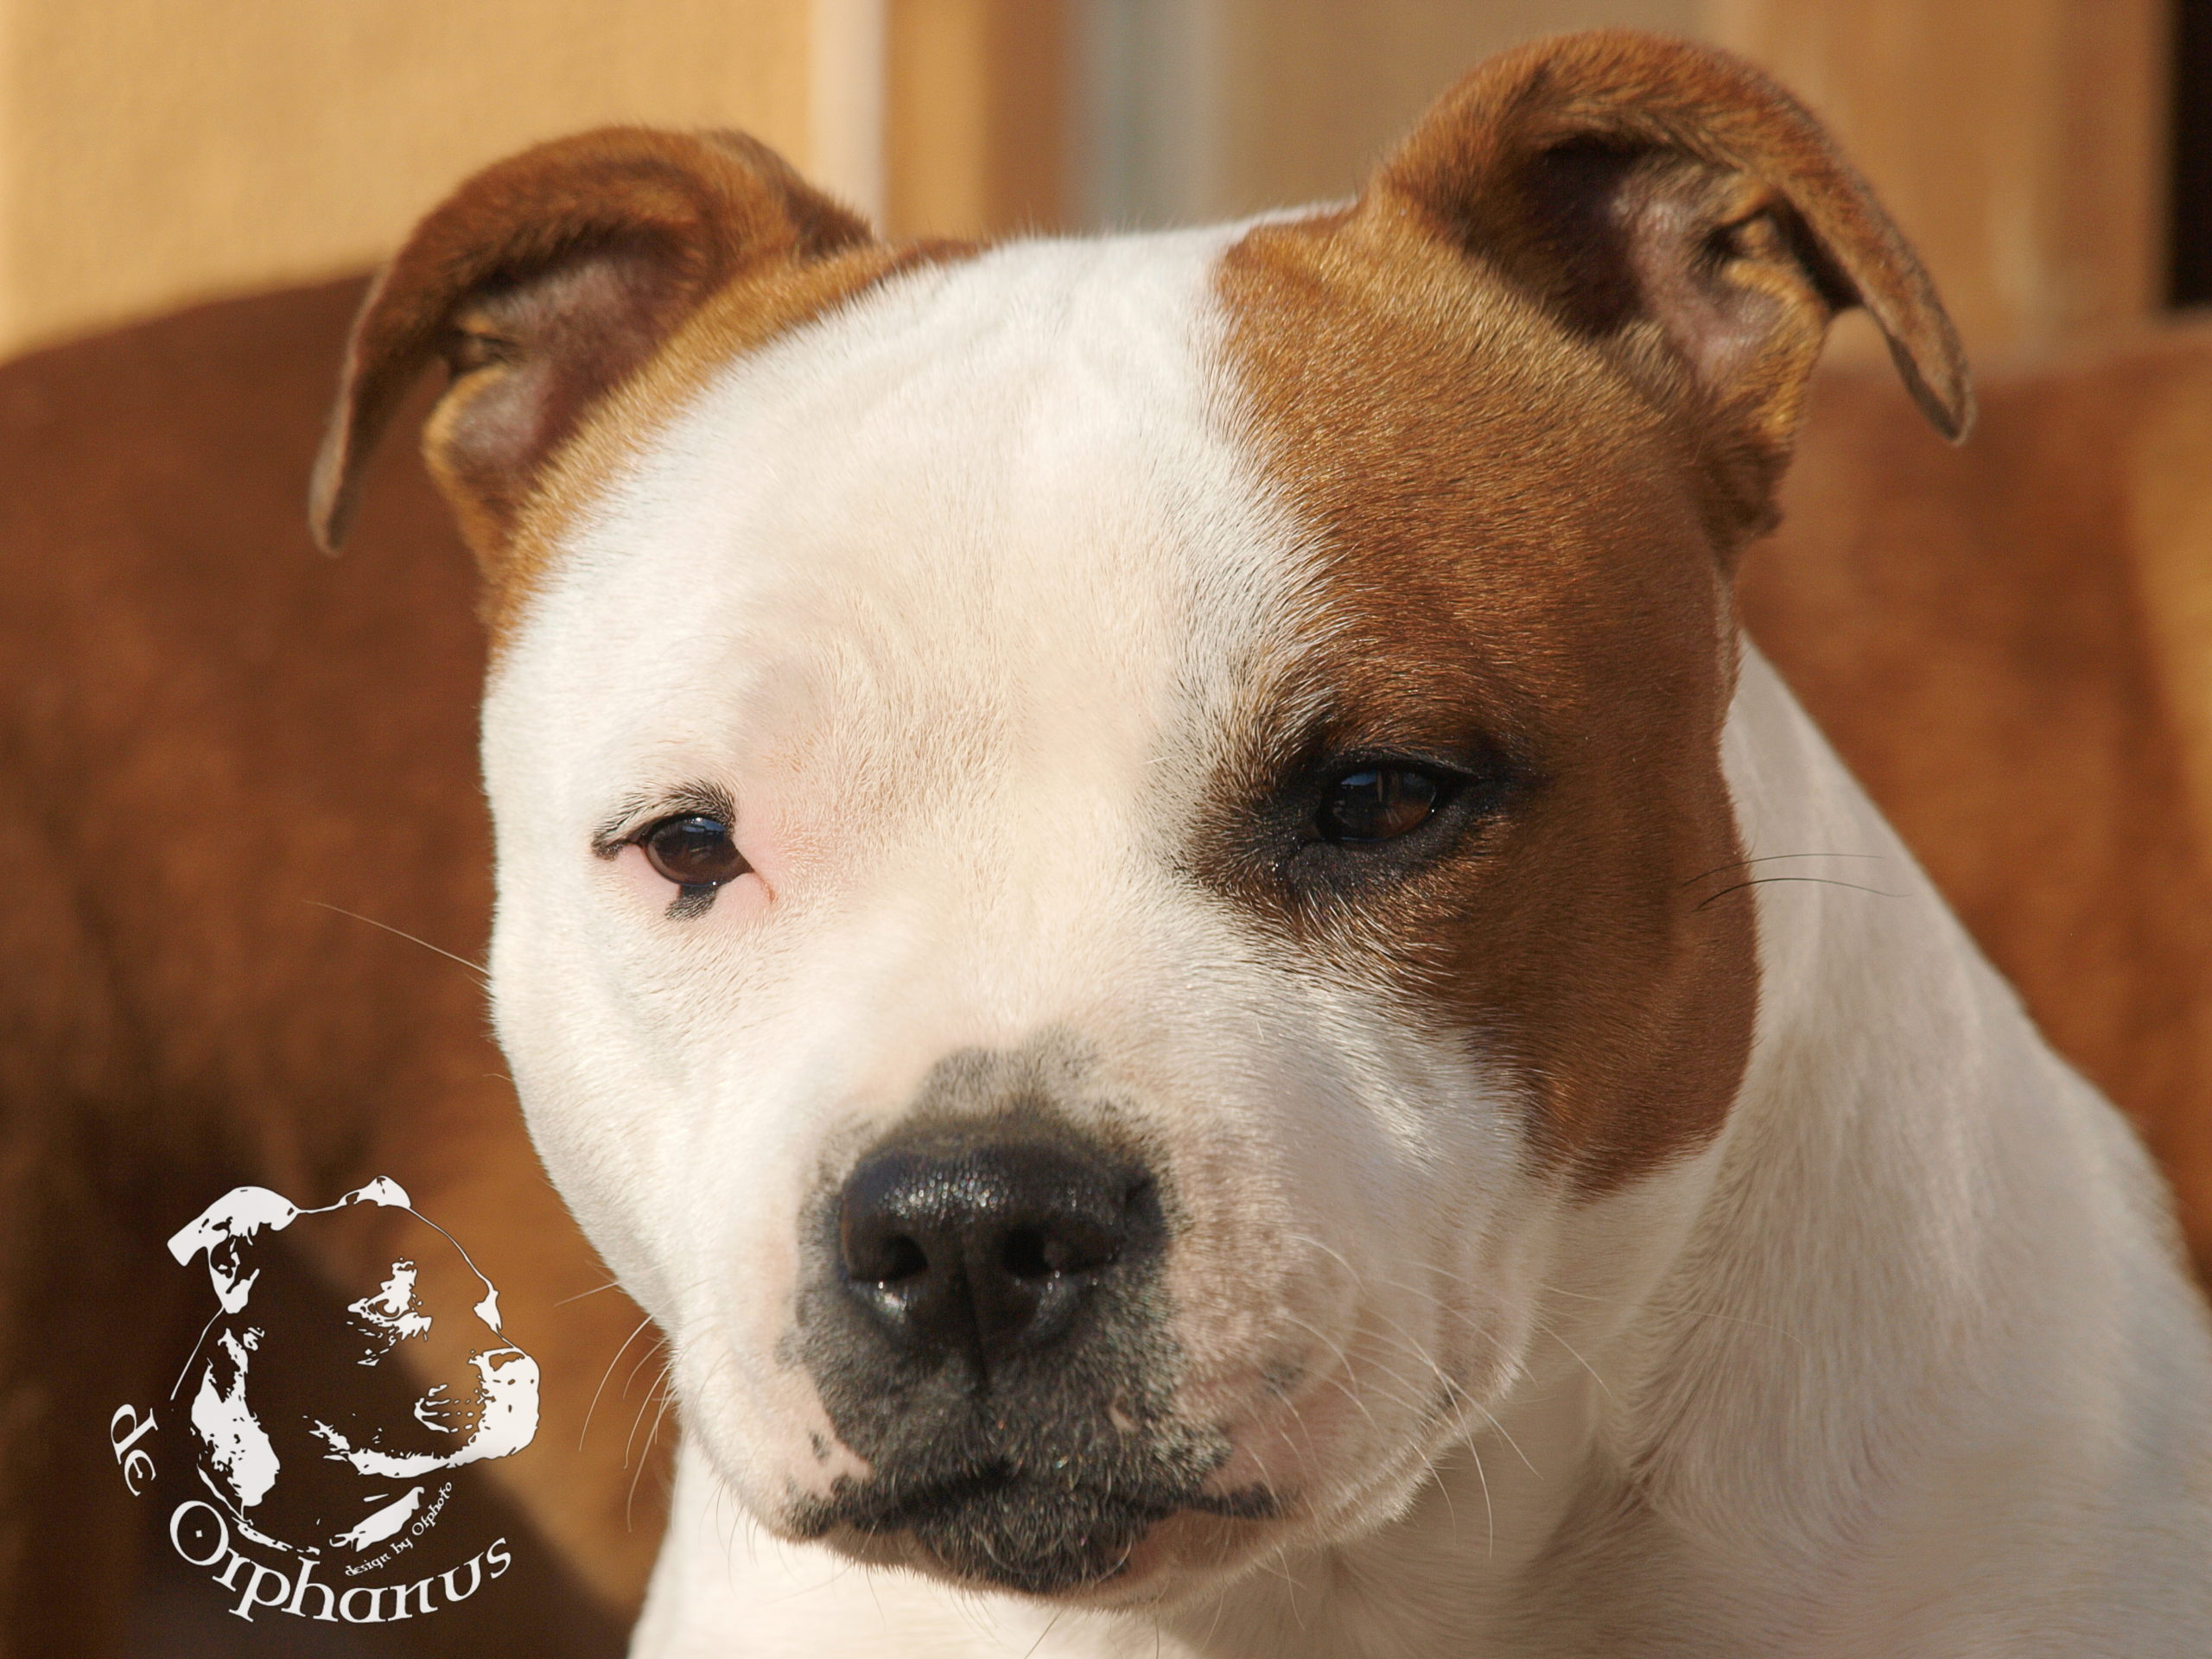 gallery Staffordshire Bull Terrier